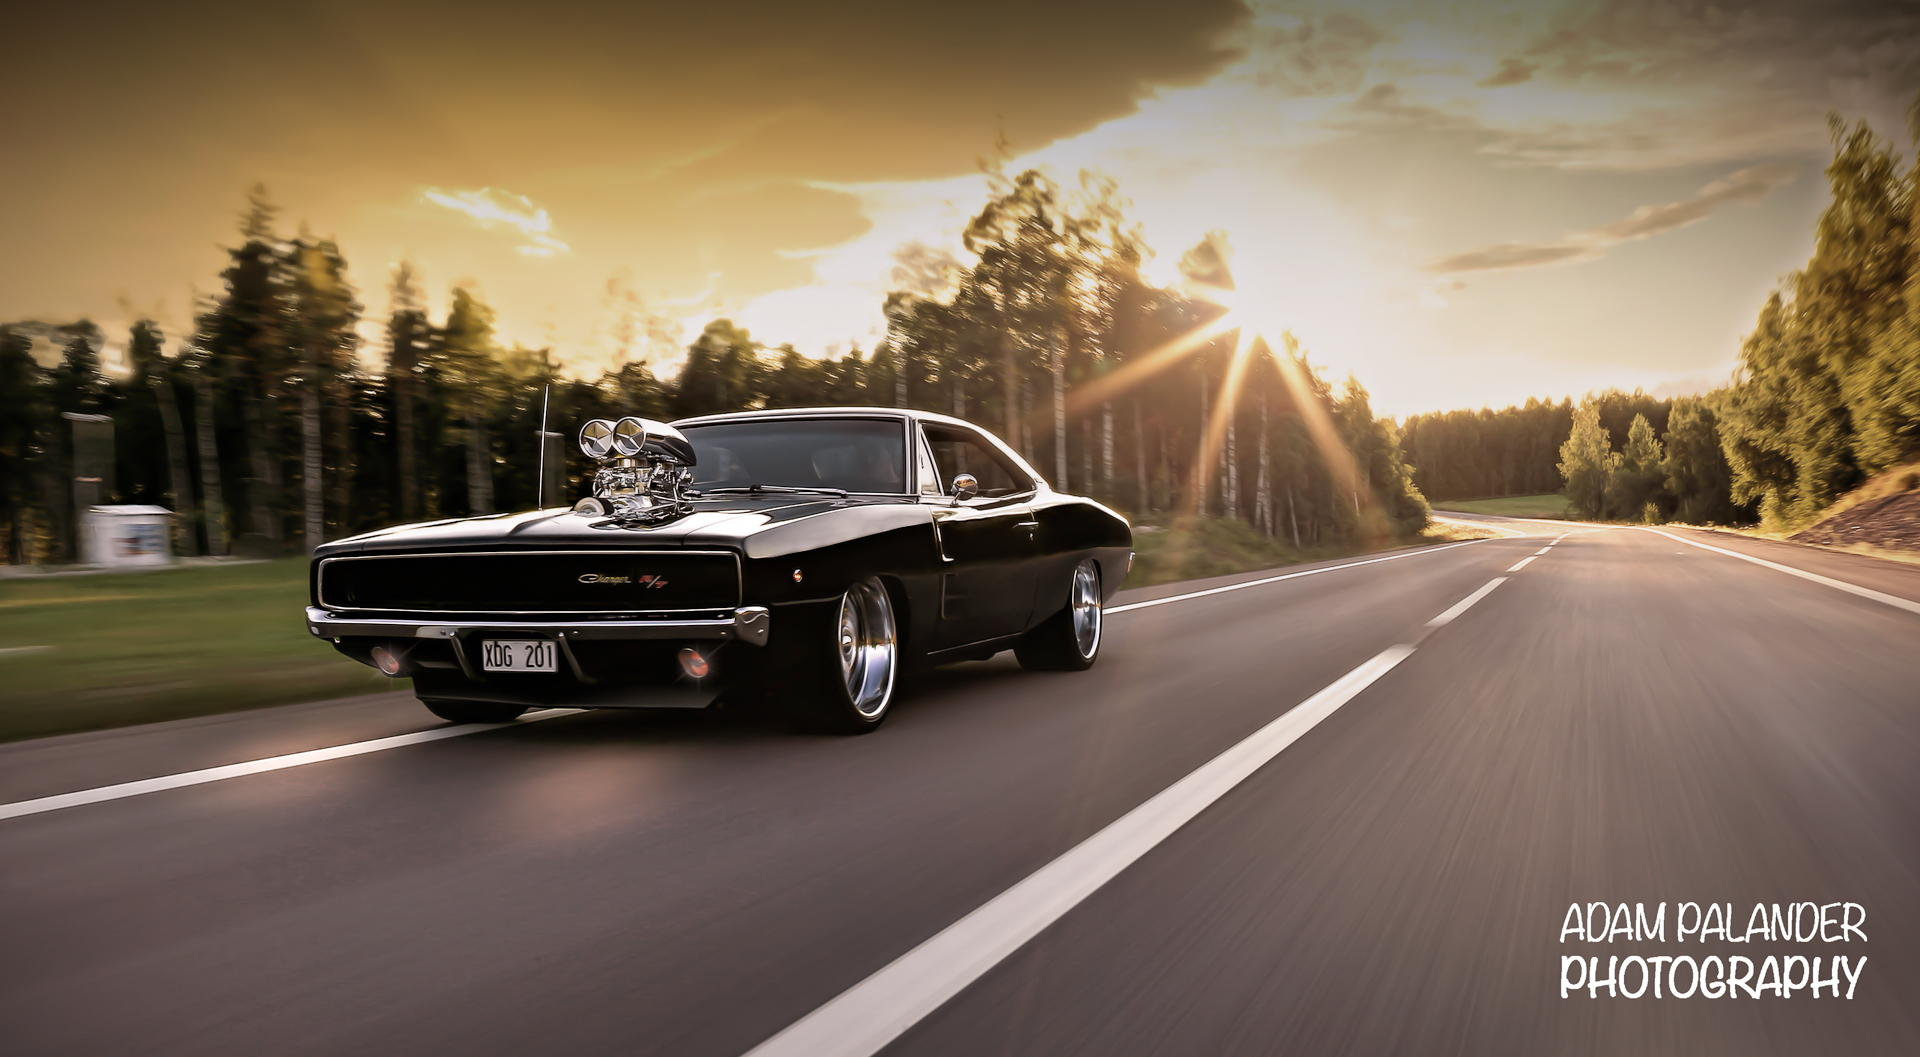 32+] 1968 Dodge Charger Wallpapers on